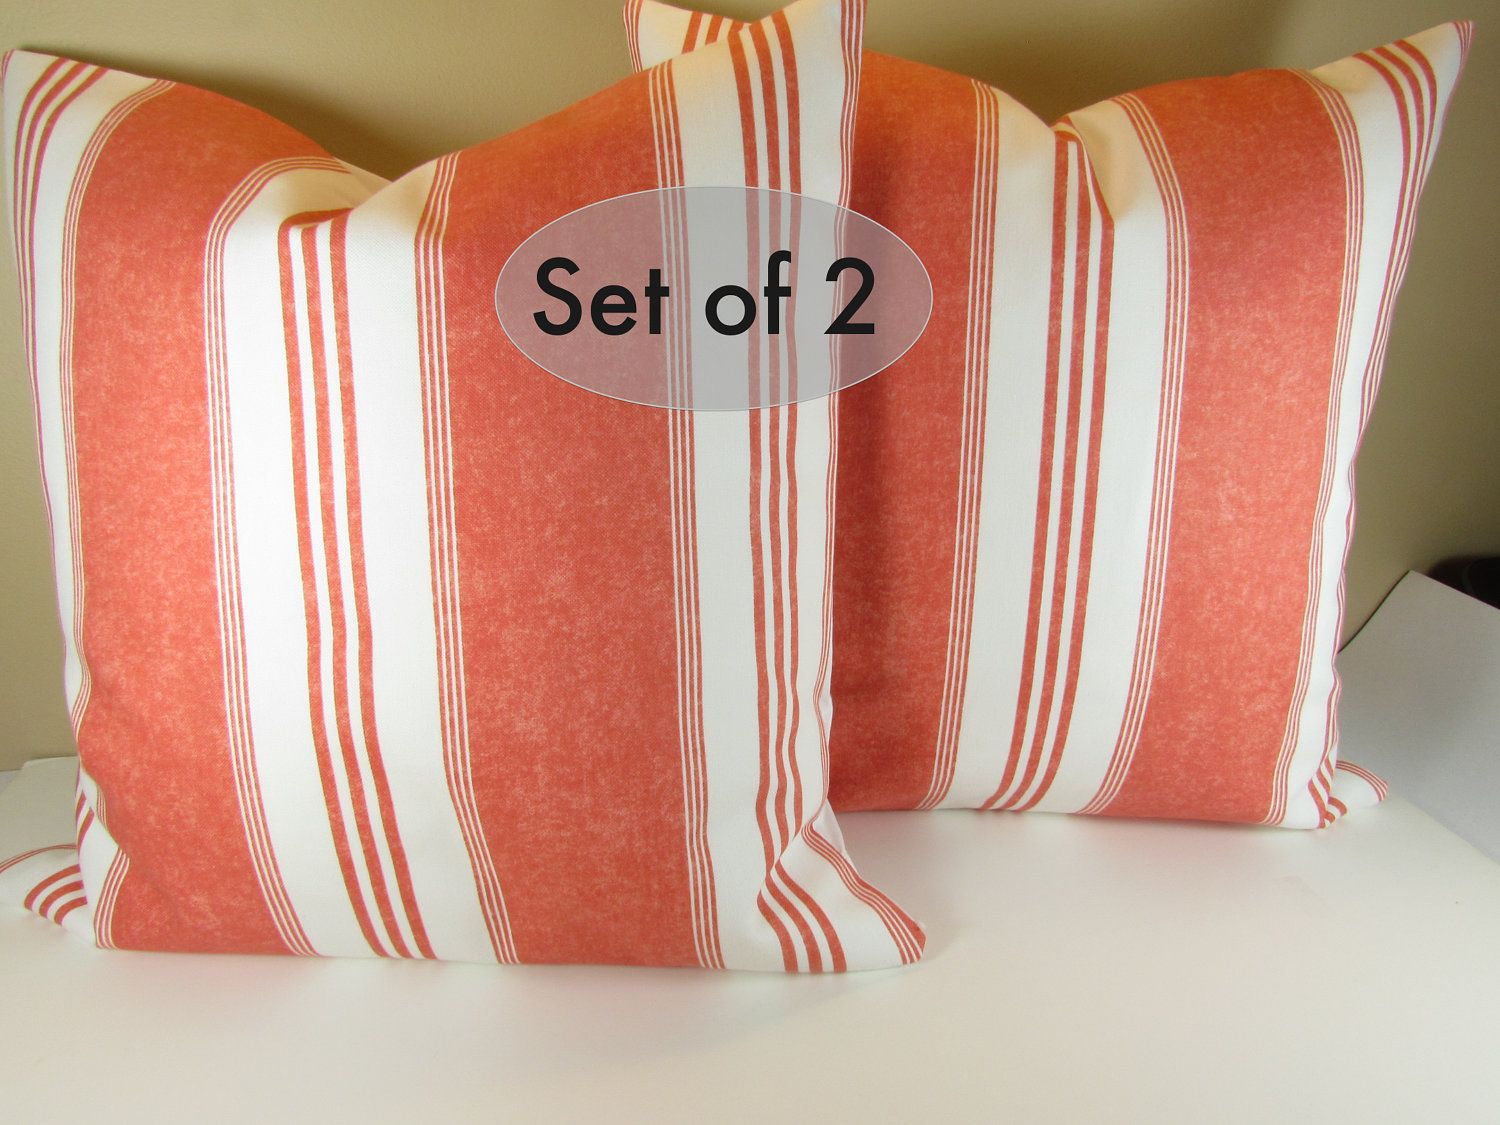 Wondrous Set Of 2 Pillows Beach 18 X 18 Striped Decorative Throw Gmtry Best Dining Table And Chair Ideas Images Gmtryco